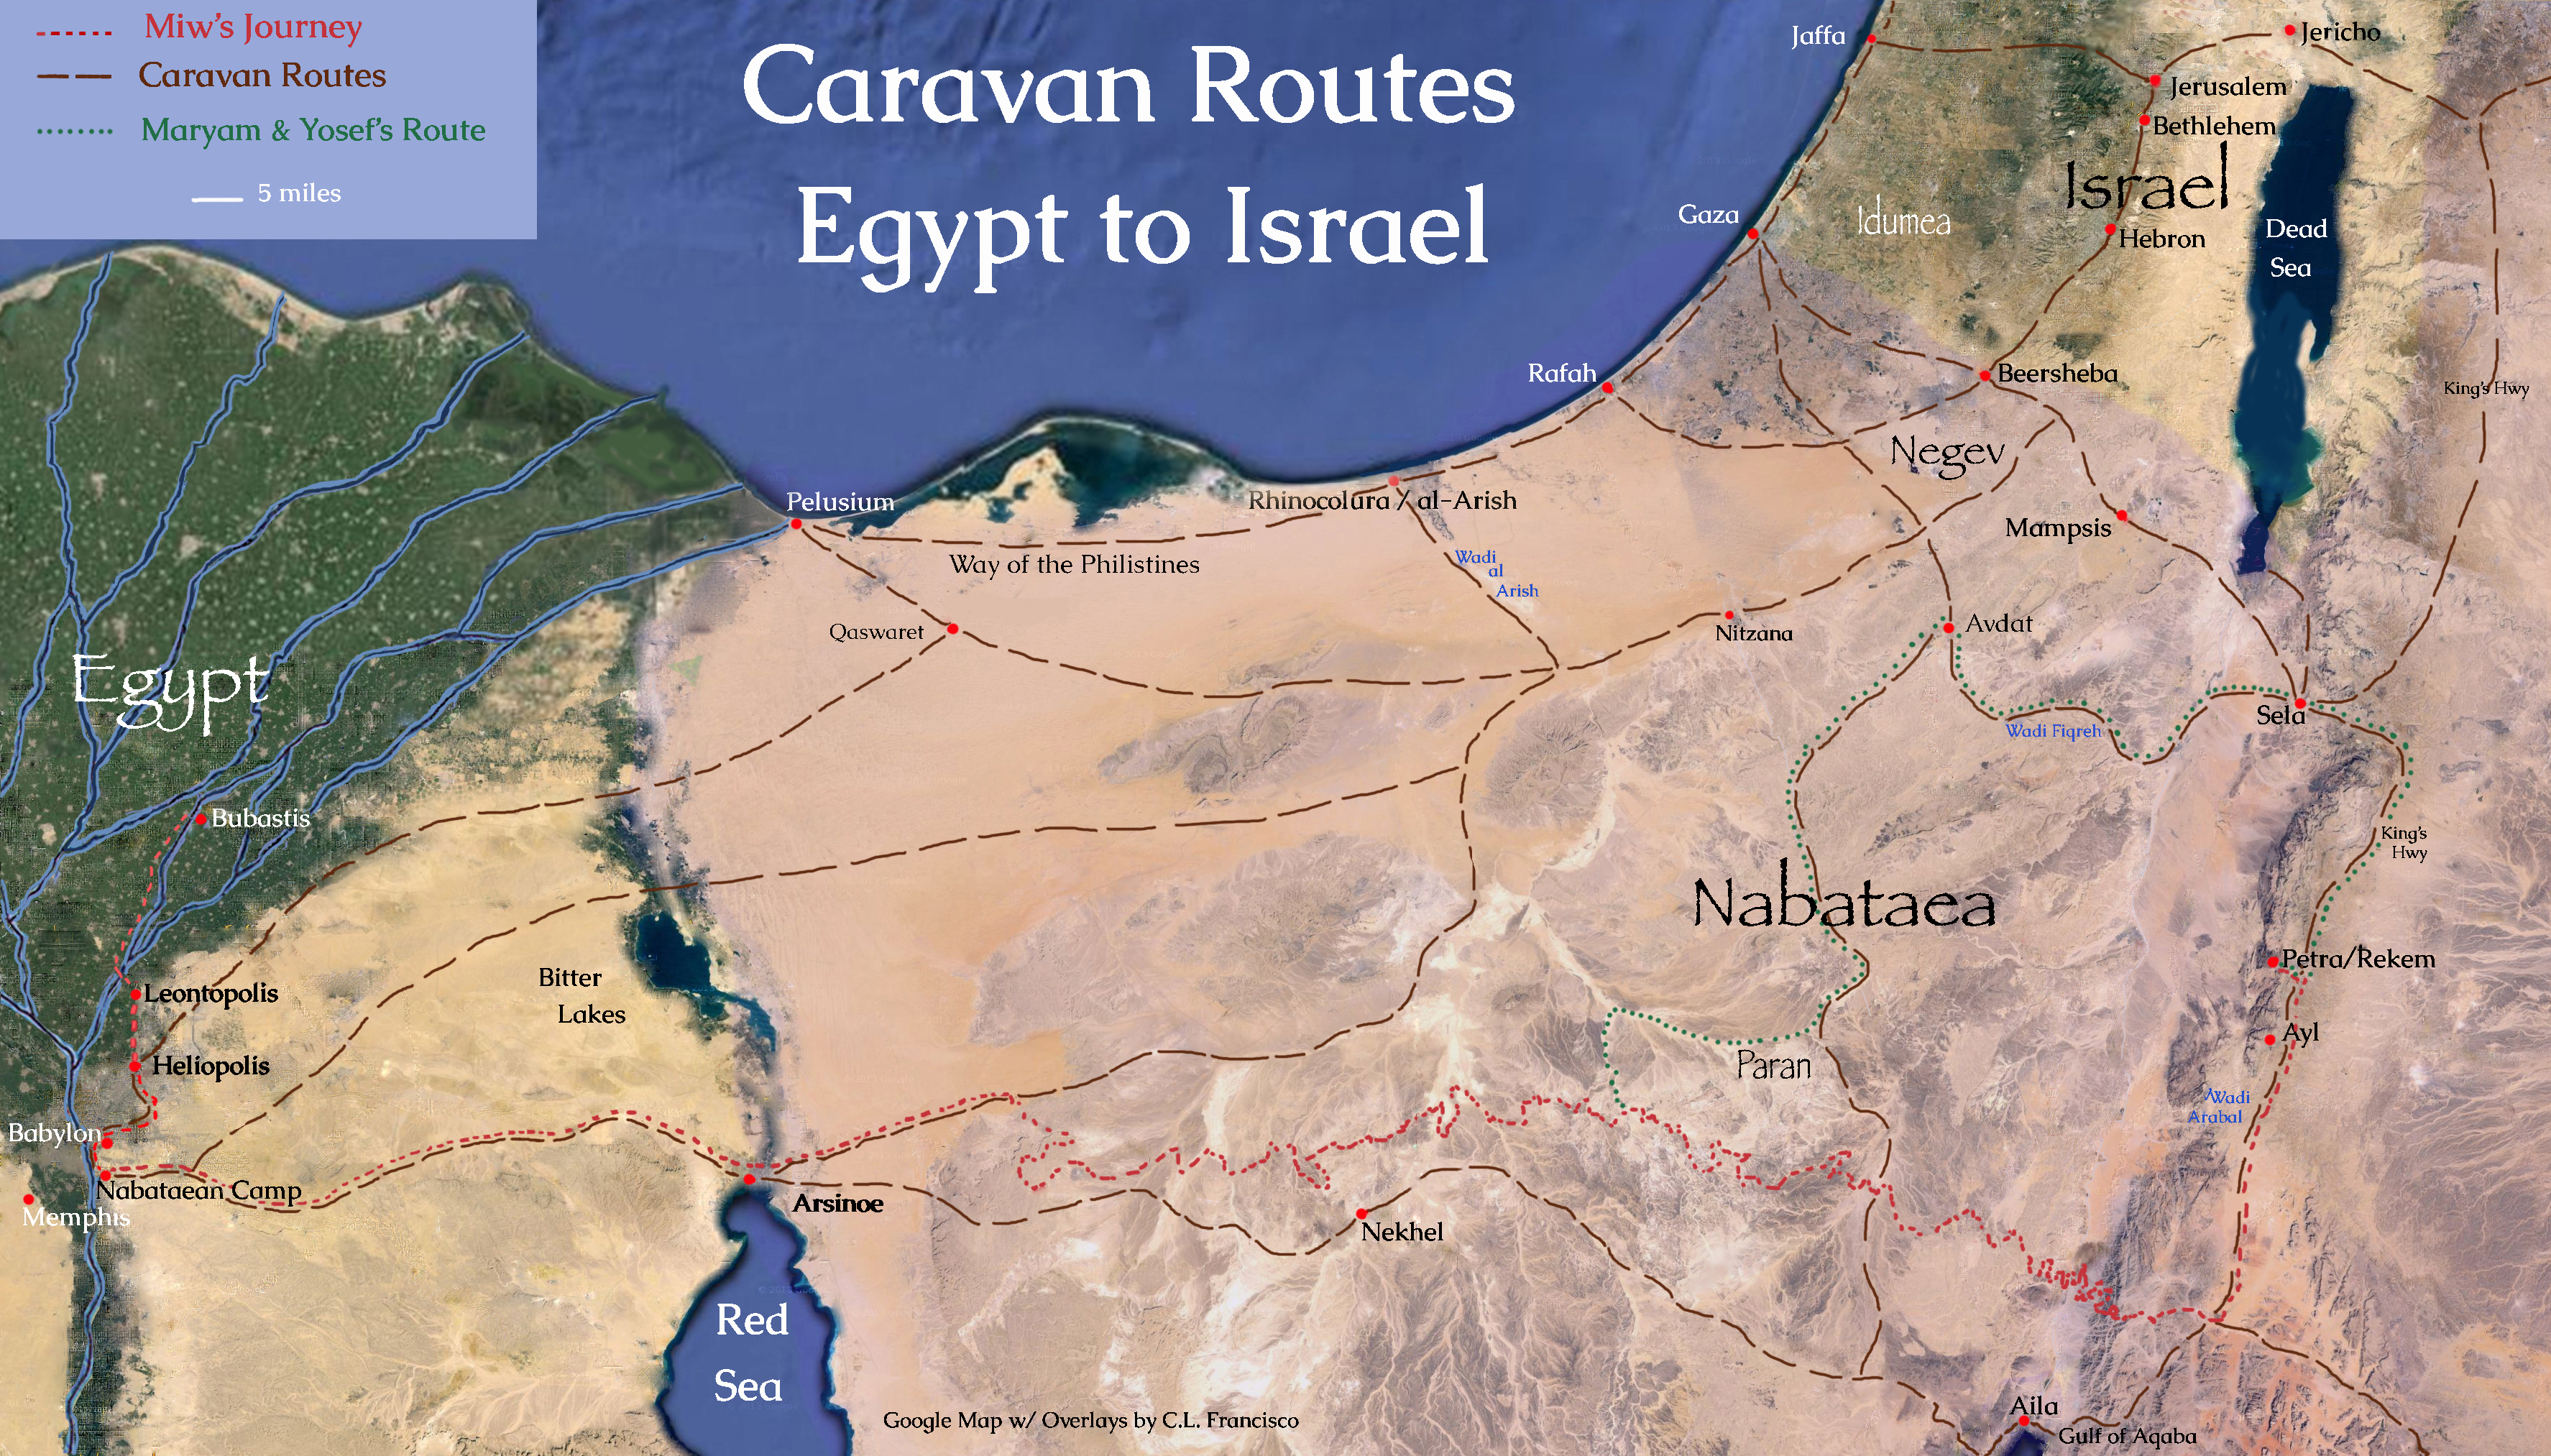 Maps from a cat out of egypt c l francisco nabataean caravan routes between egypt and israel in the 1st century ce google map with gumiabroncs Gallery